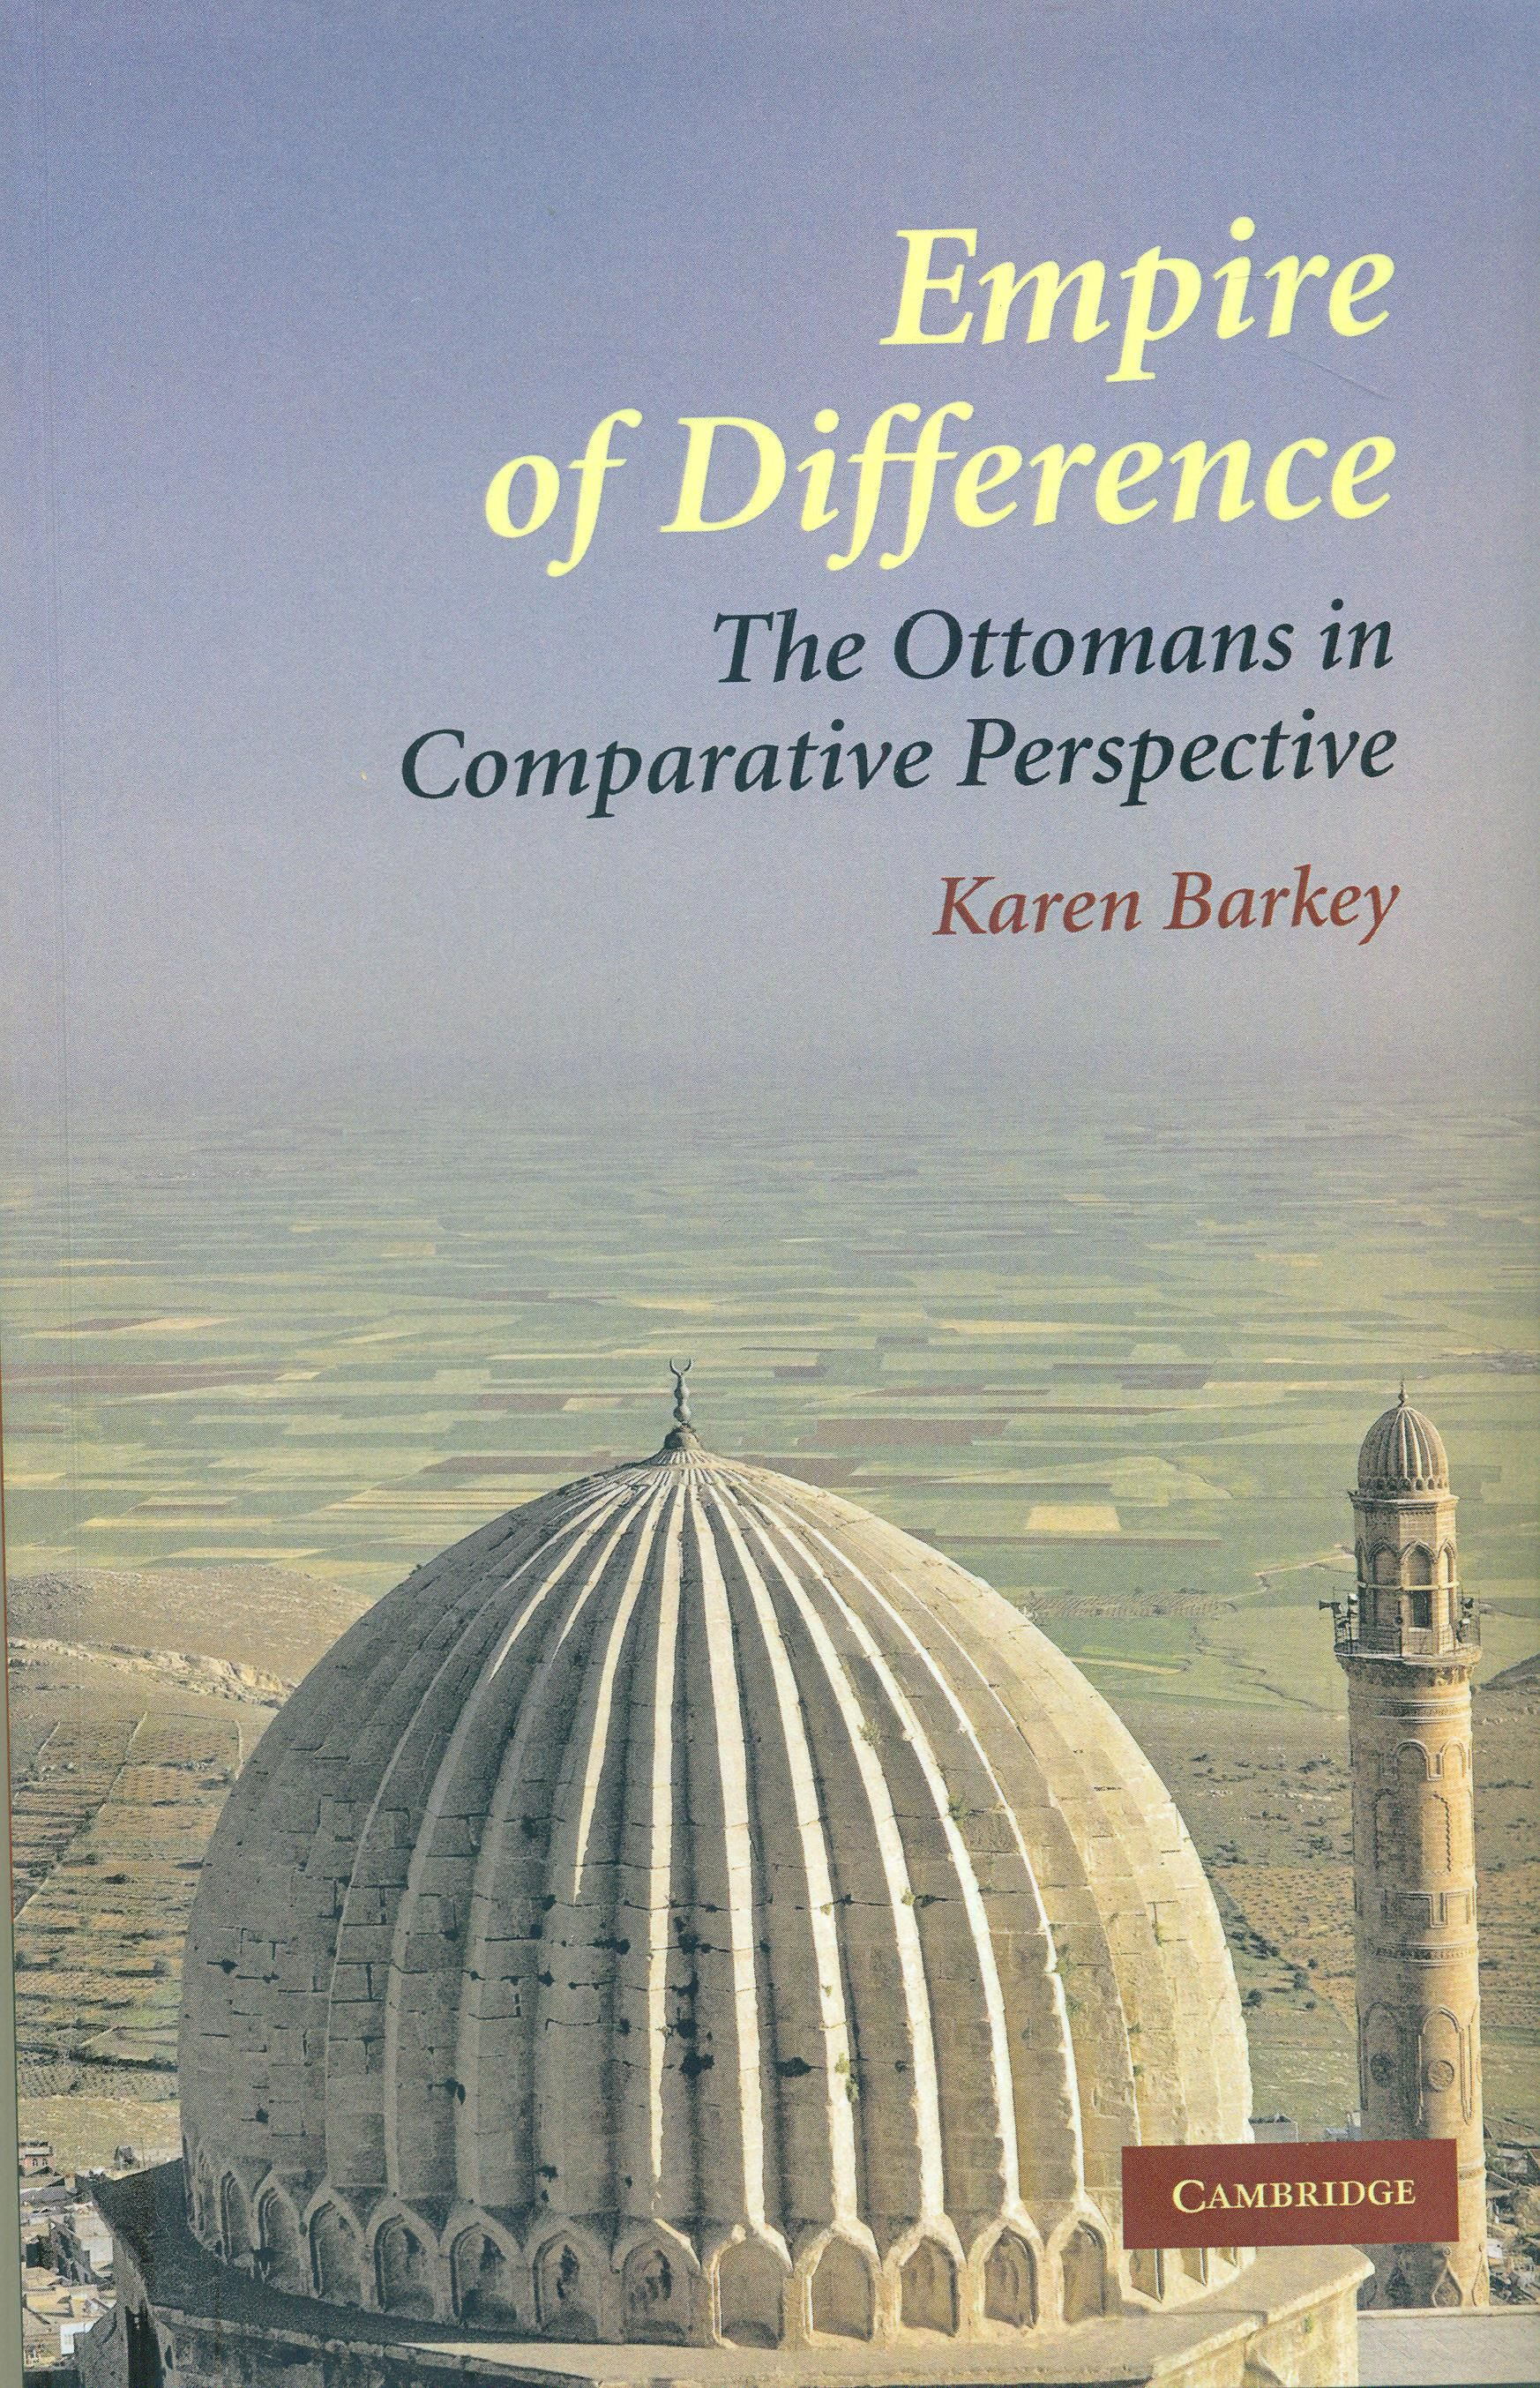 Empire of difference : the Ottomans in comparative perspective / Karen Barkey.( Cambridge University Press, 2008.) / DR 531 B23